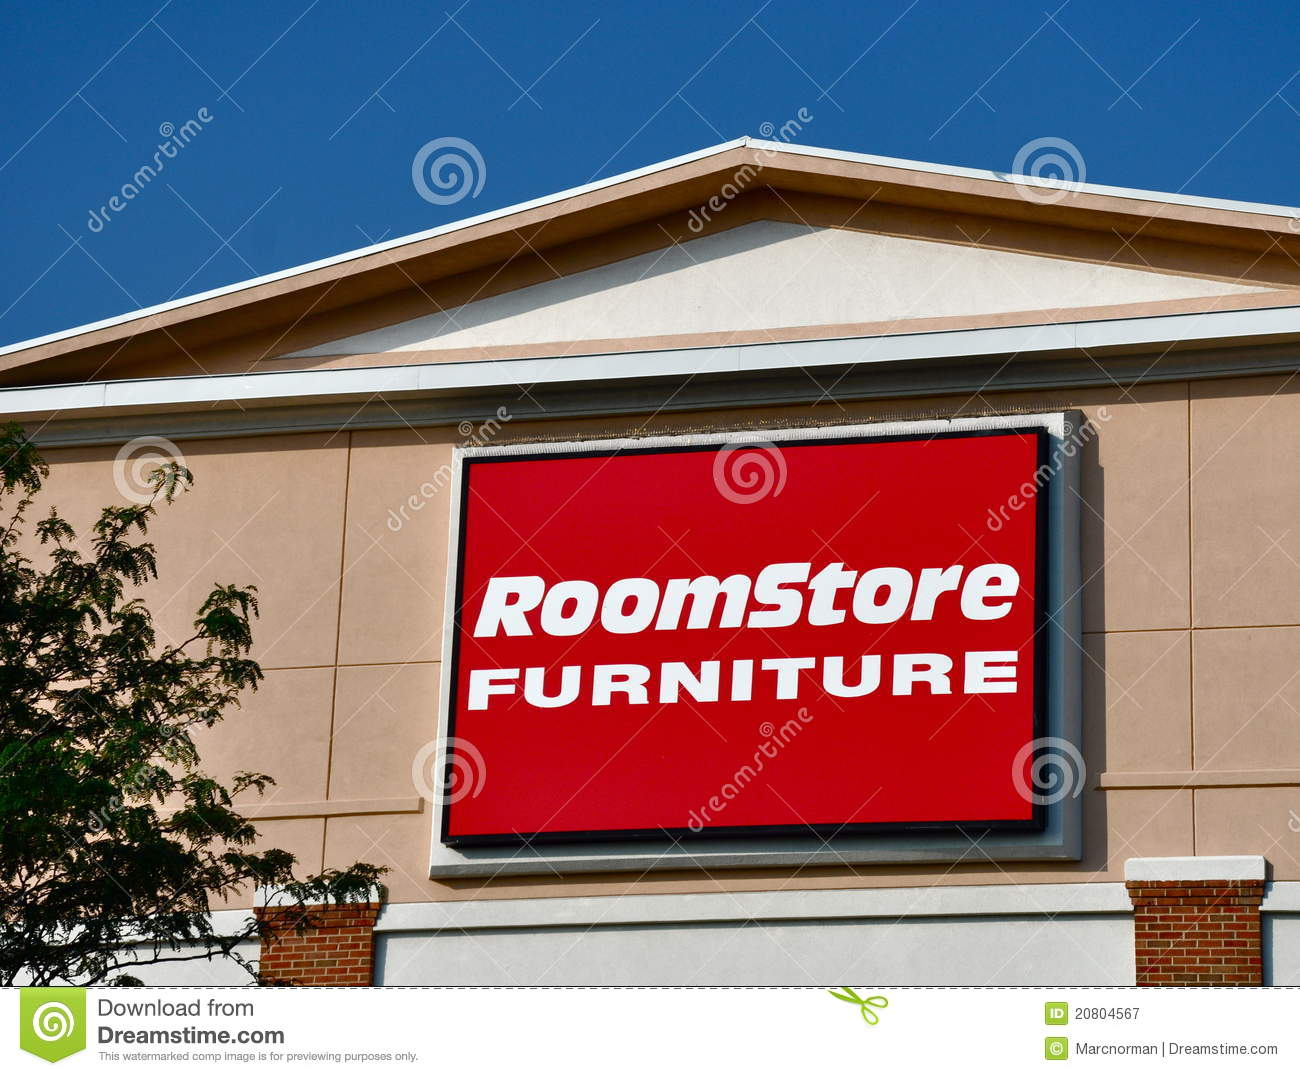 Room Store Furniture Sign Editorial graphy Image